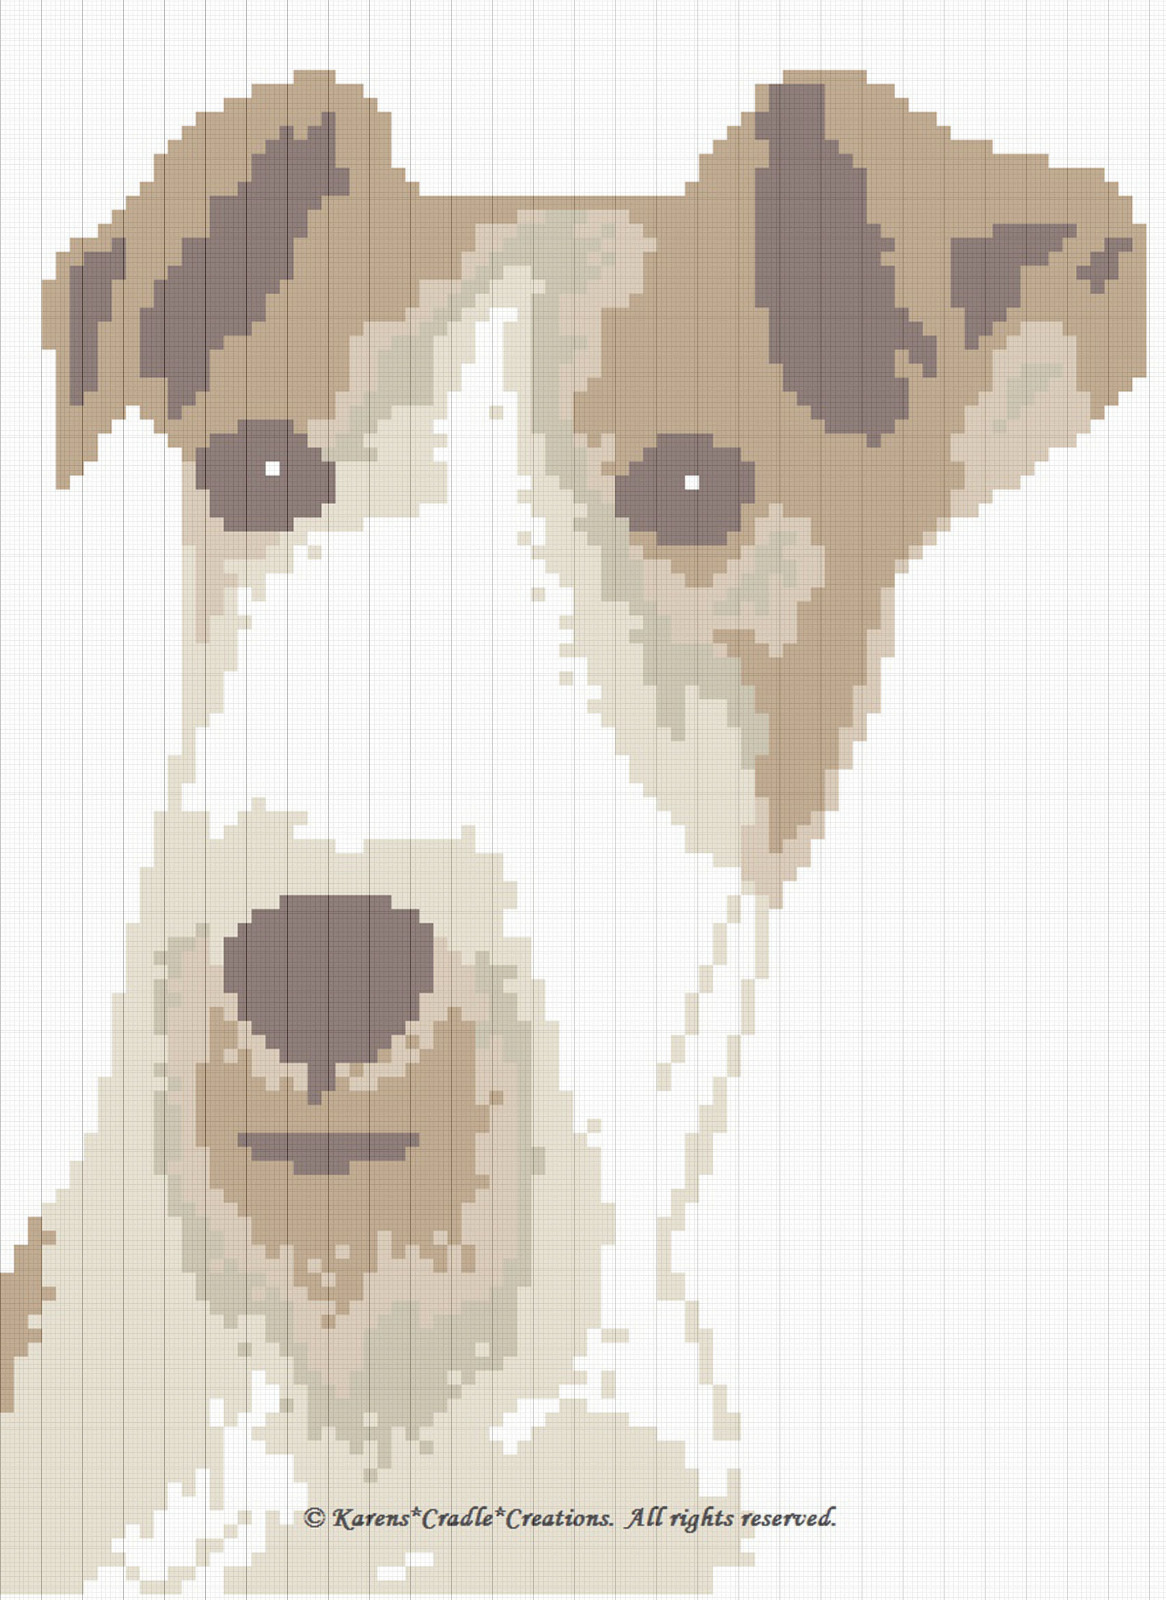 Crochet Patterns - Wire Fox Terrier Afghan Pattern | eBay